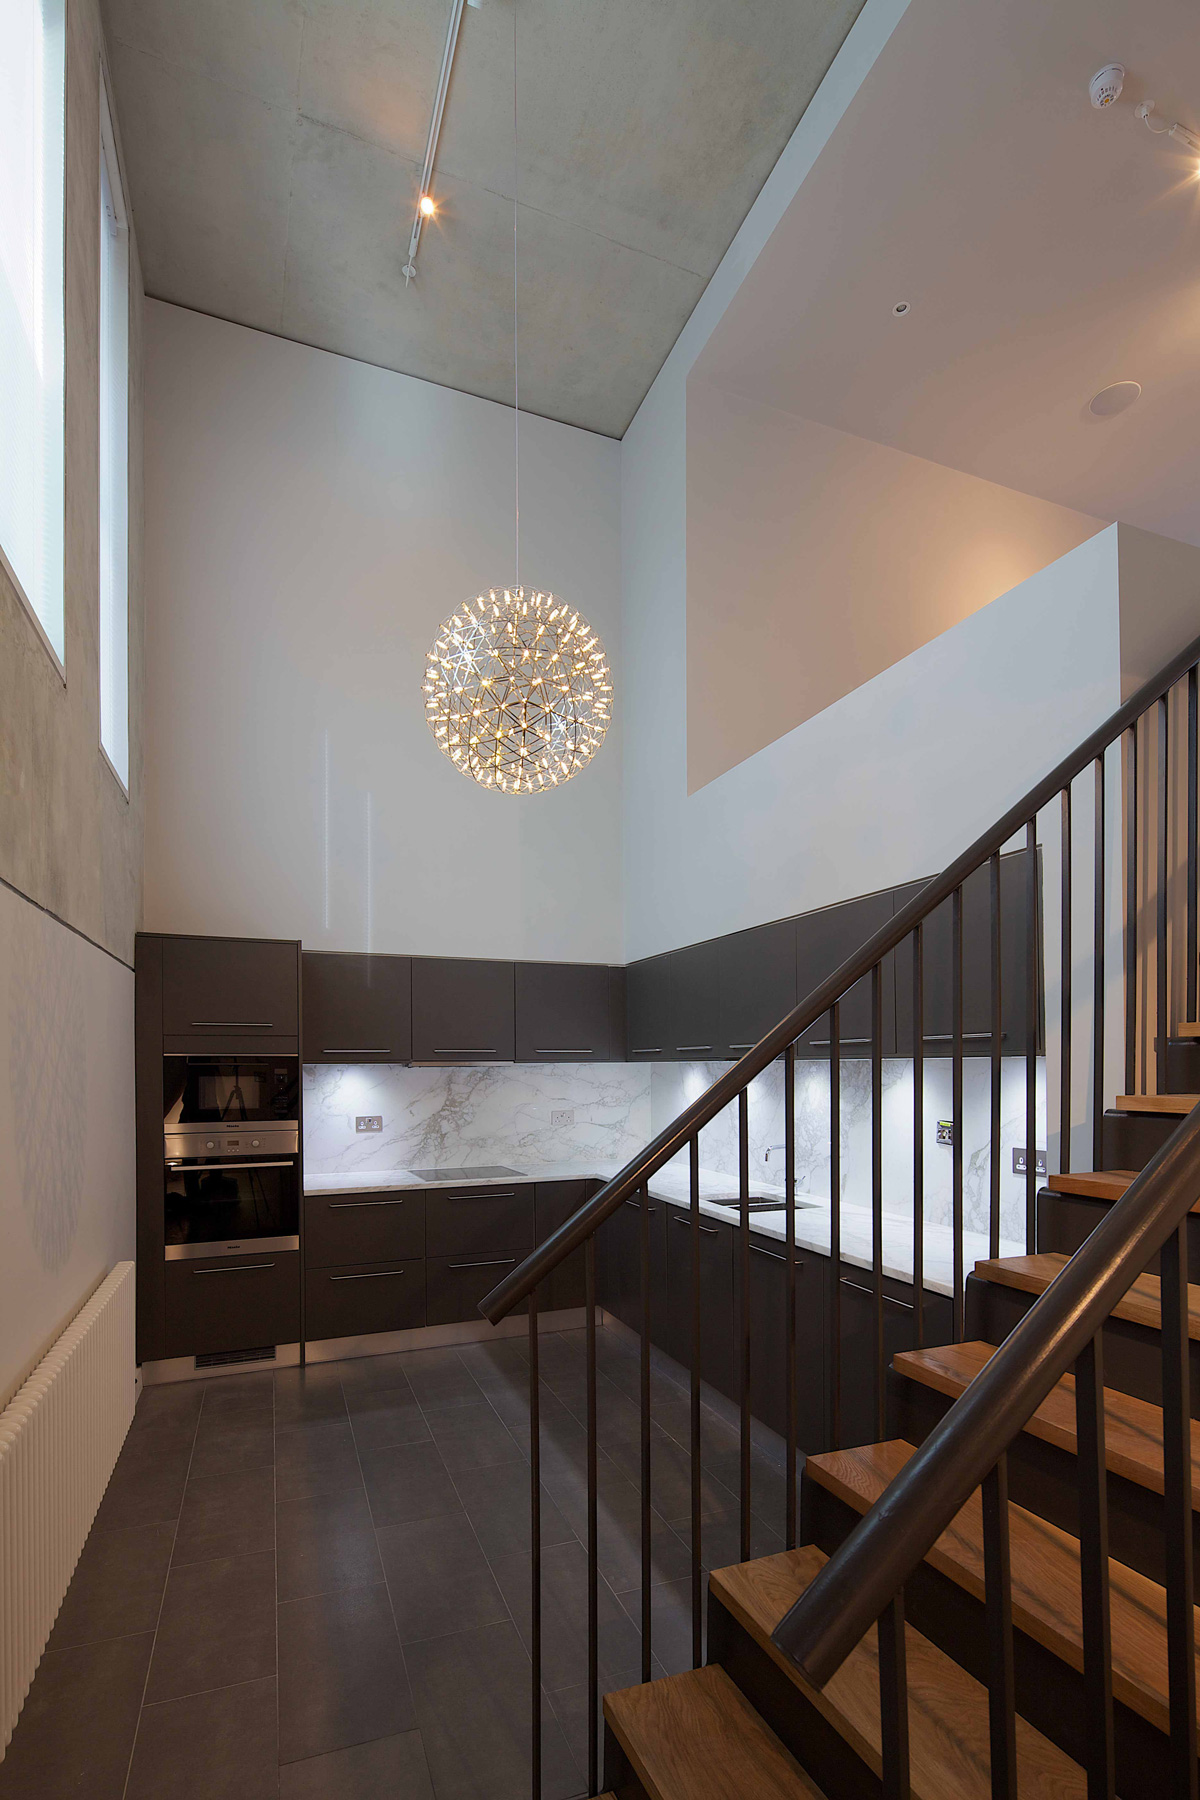 Bedford architects